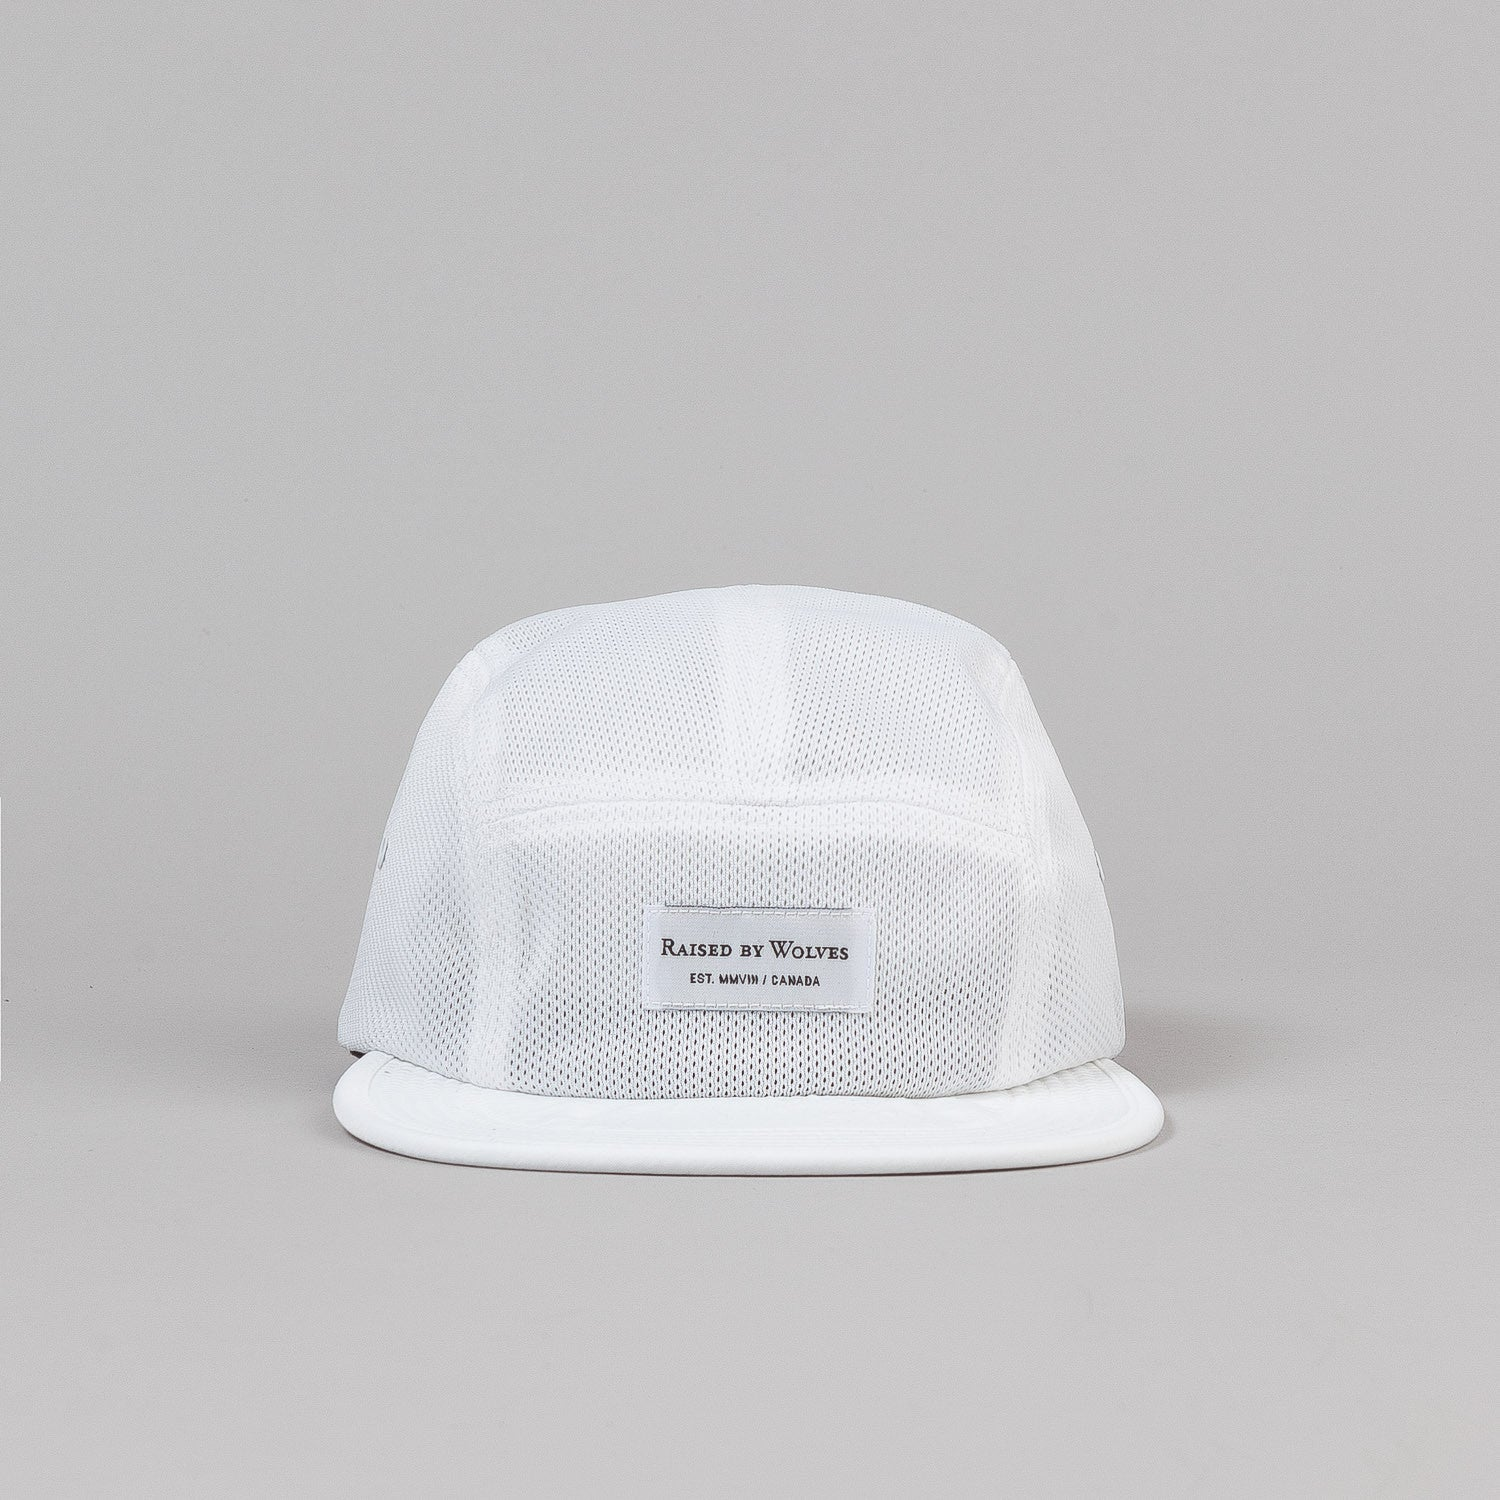 Raised By Wolves Algonquin Camp Cap - Koolknit White